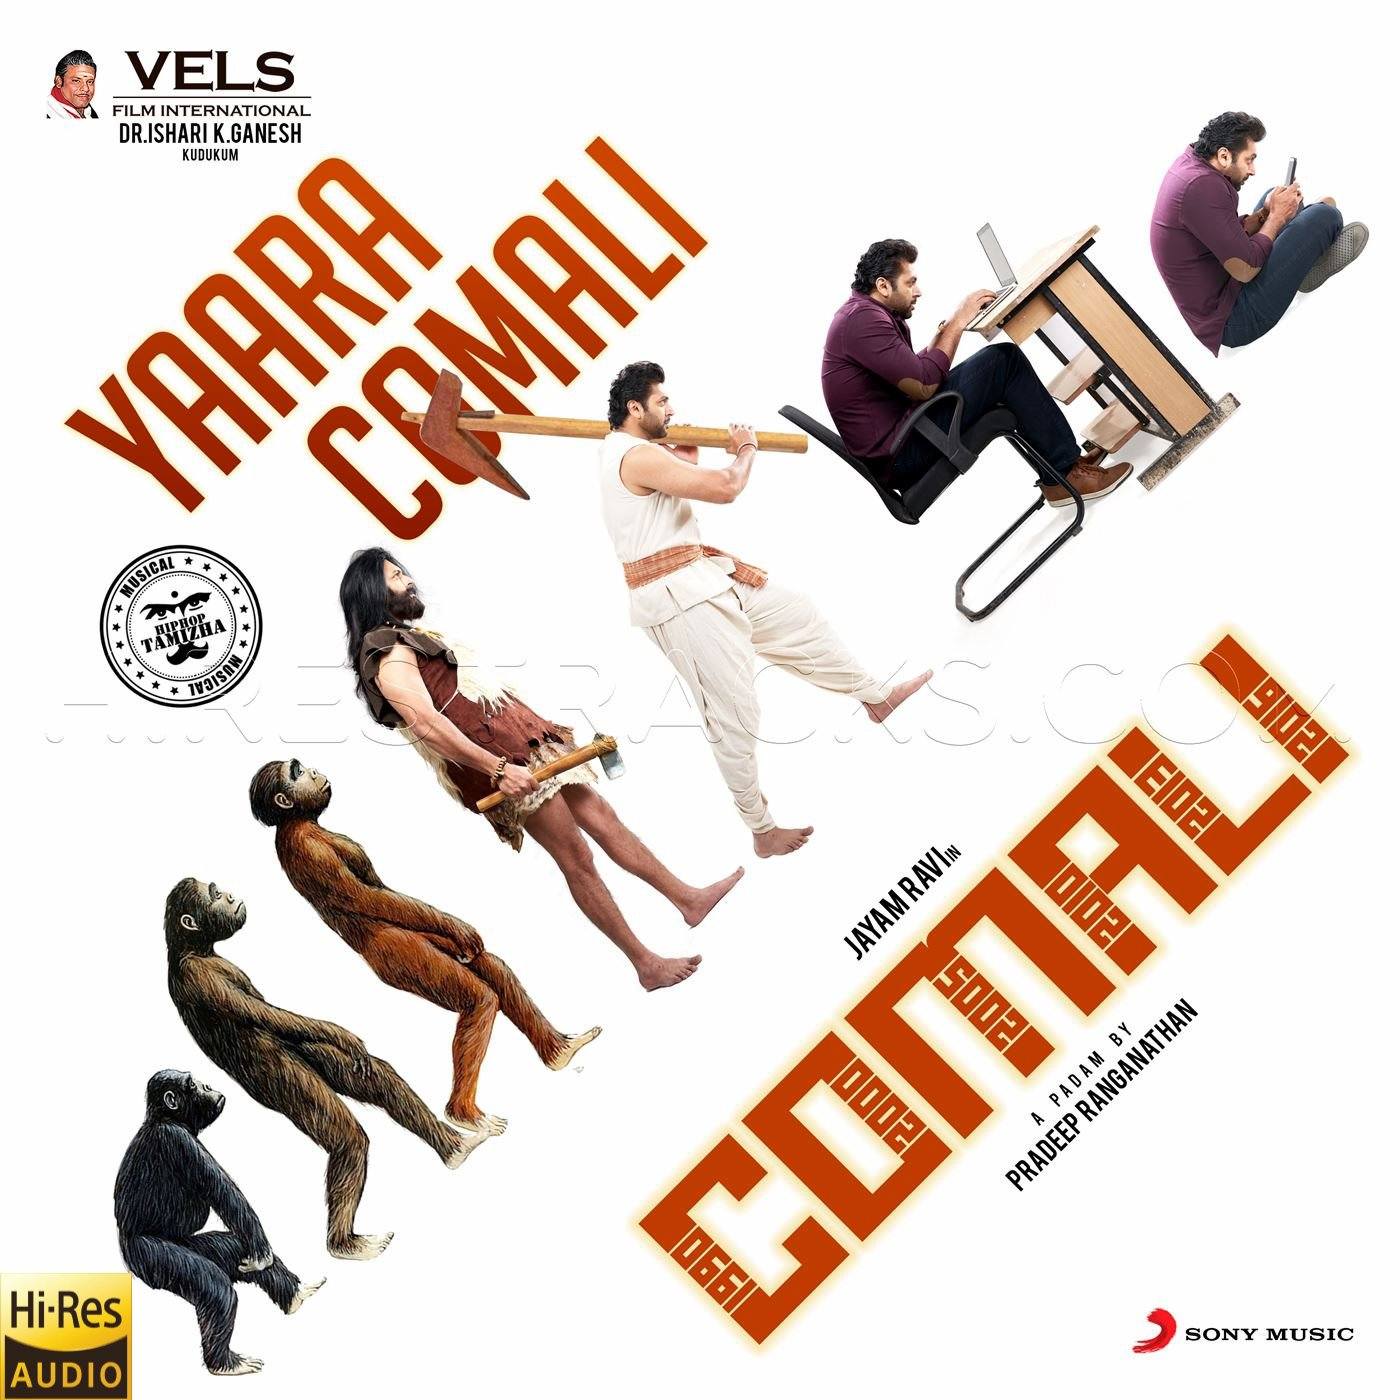 Yaara Comali (From Comali) (2019) (Hiphop Tamizha) (Sony Music) [24 BIT- 48 KHZ] [Digital-DL-FLAC]